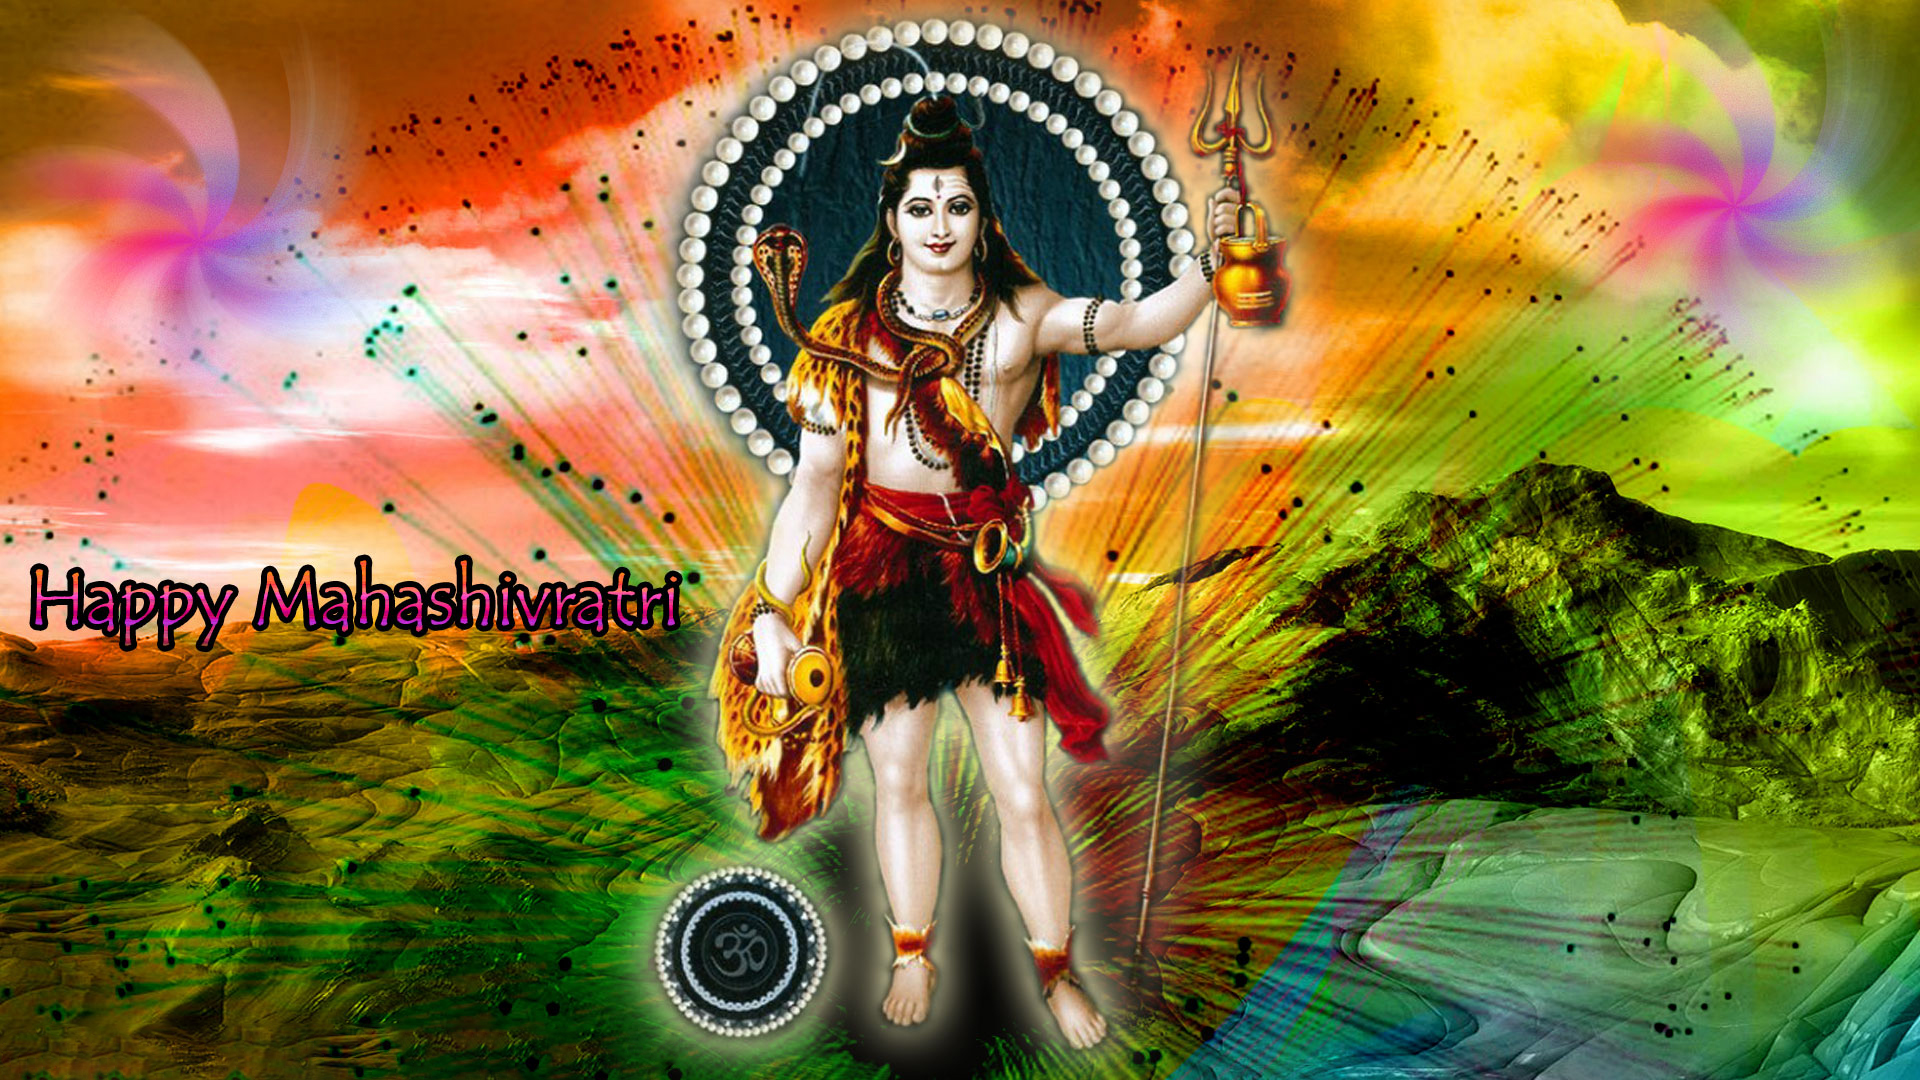 pics of lord shiva for dp